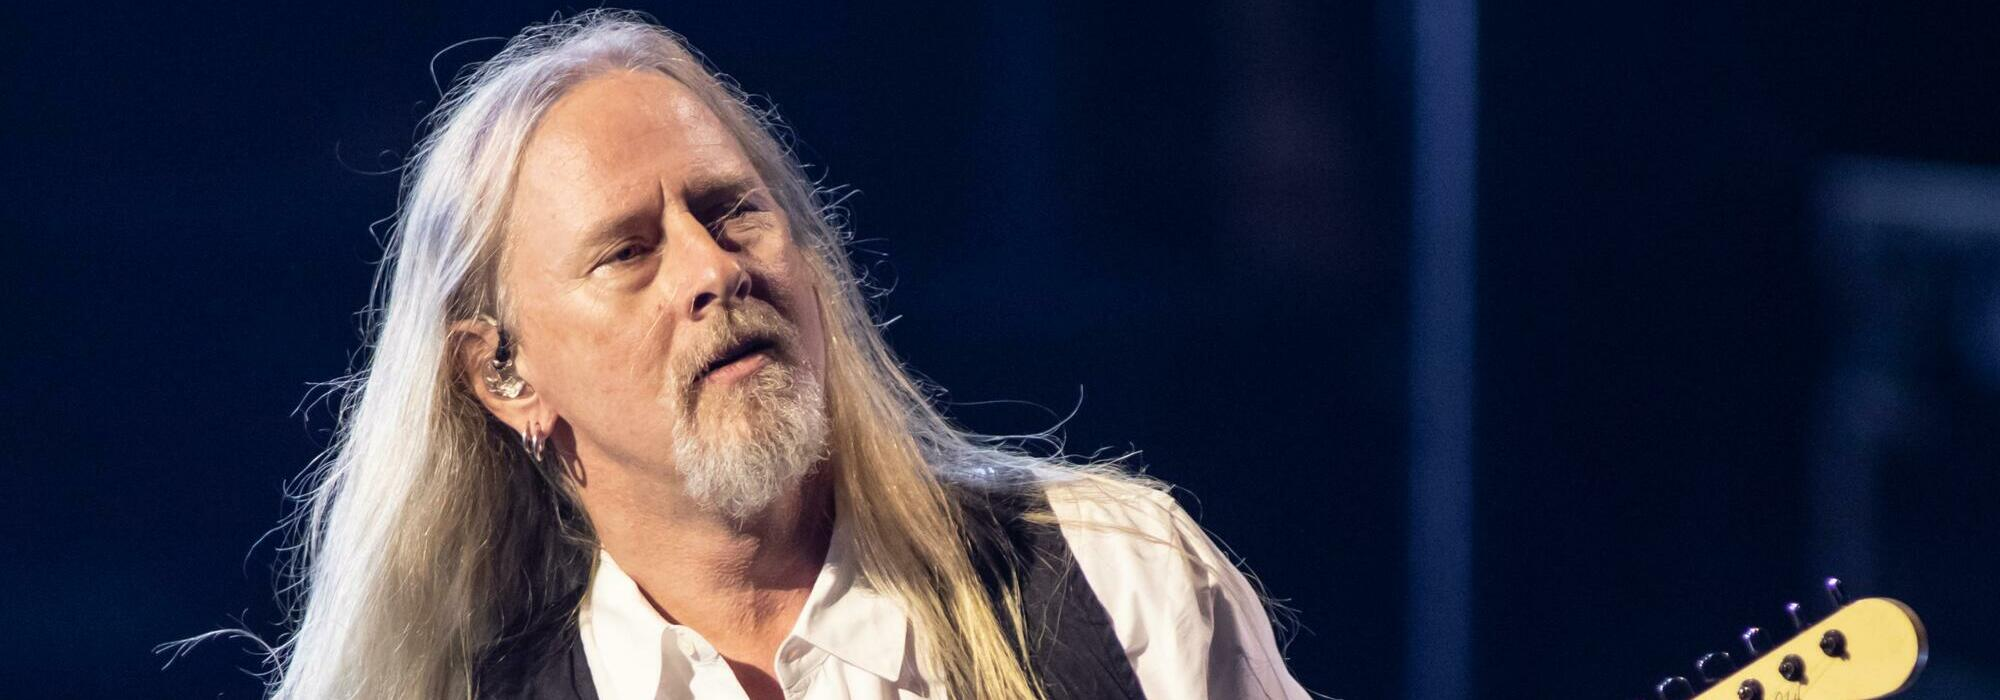 A Jerry Cantrell live event